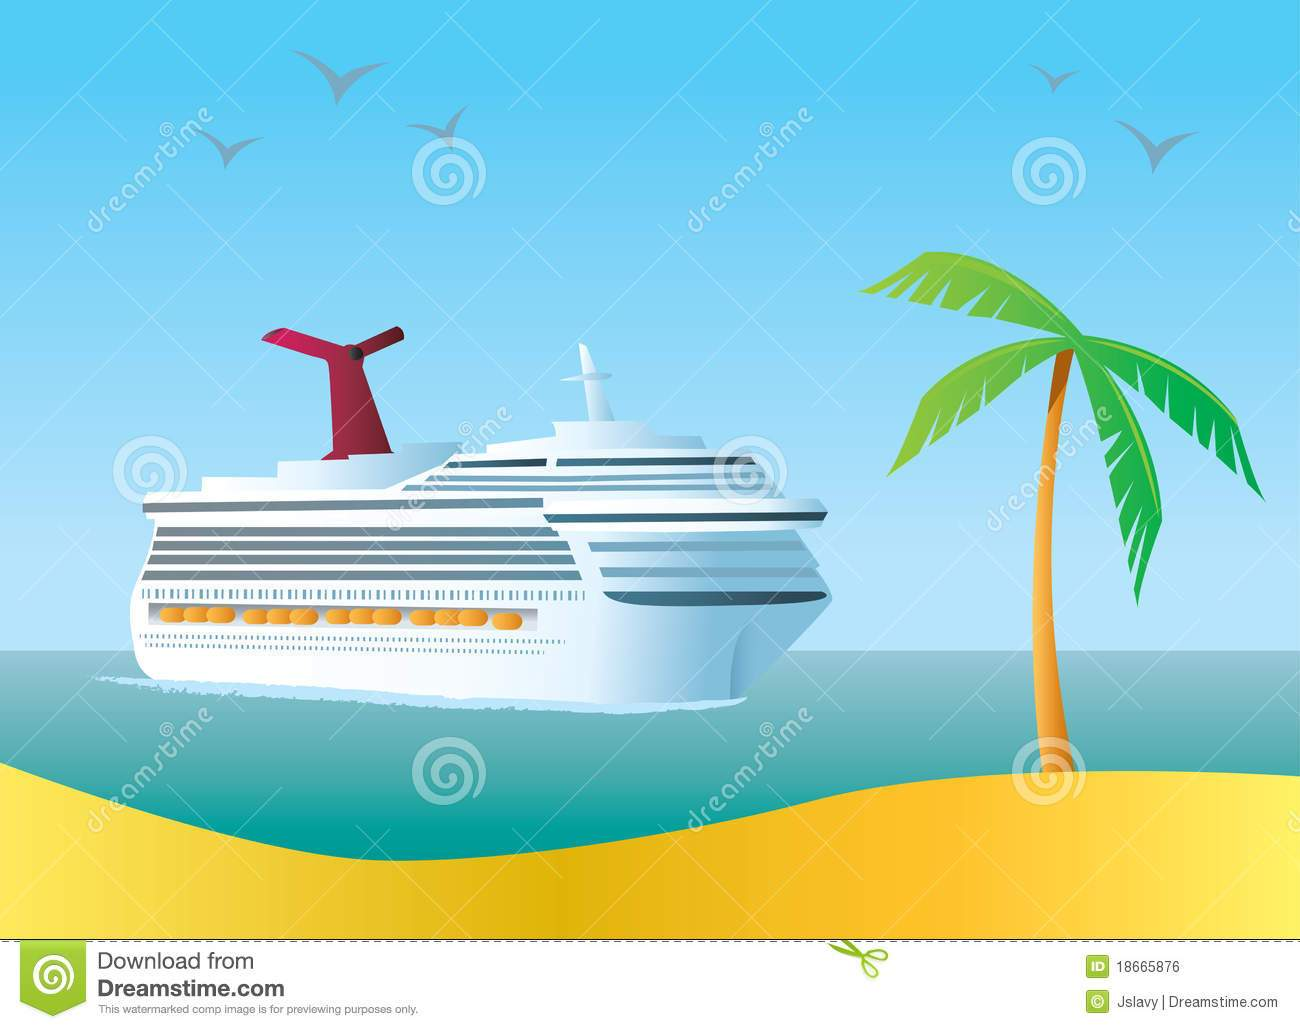 Carnival cruise clipart svg royalty free download Carnival cruise ship clipart 2 » Clipart Portal svg royalty free download